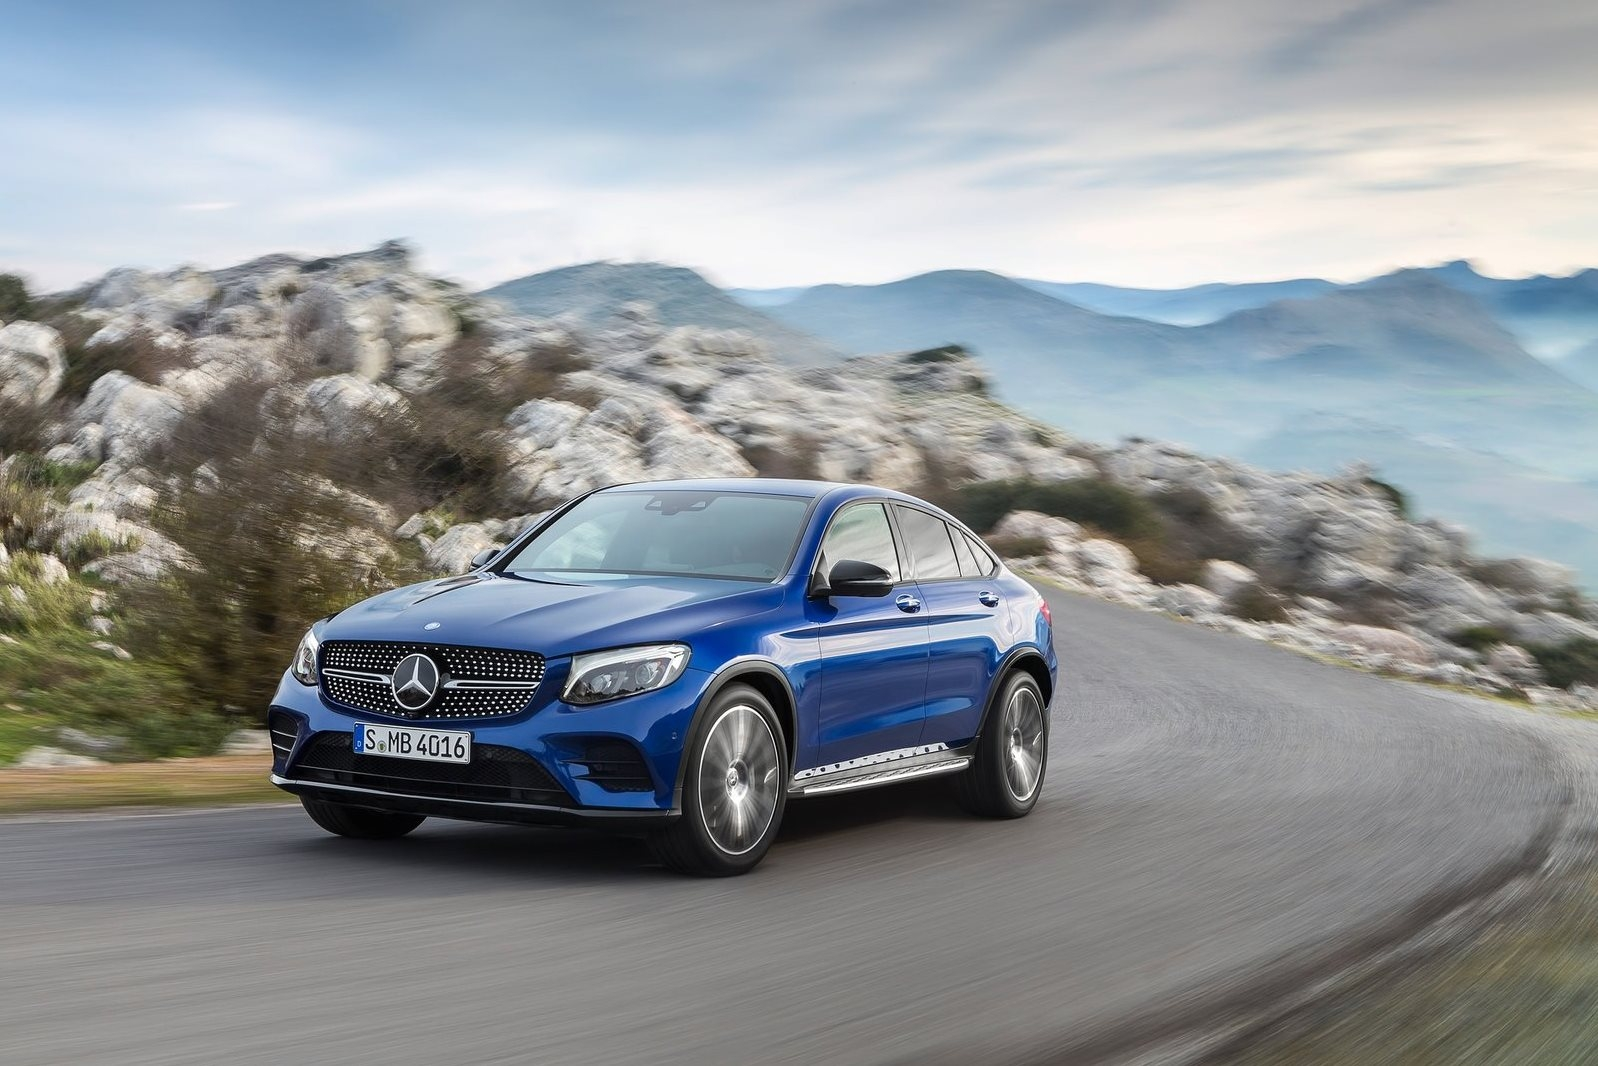 Mercedes-Benz GLC Coupe (2016)